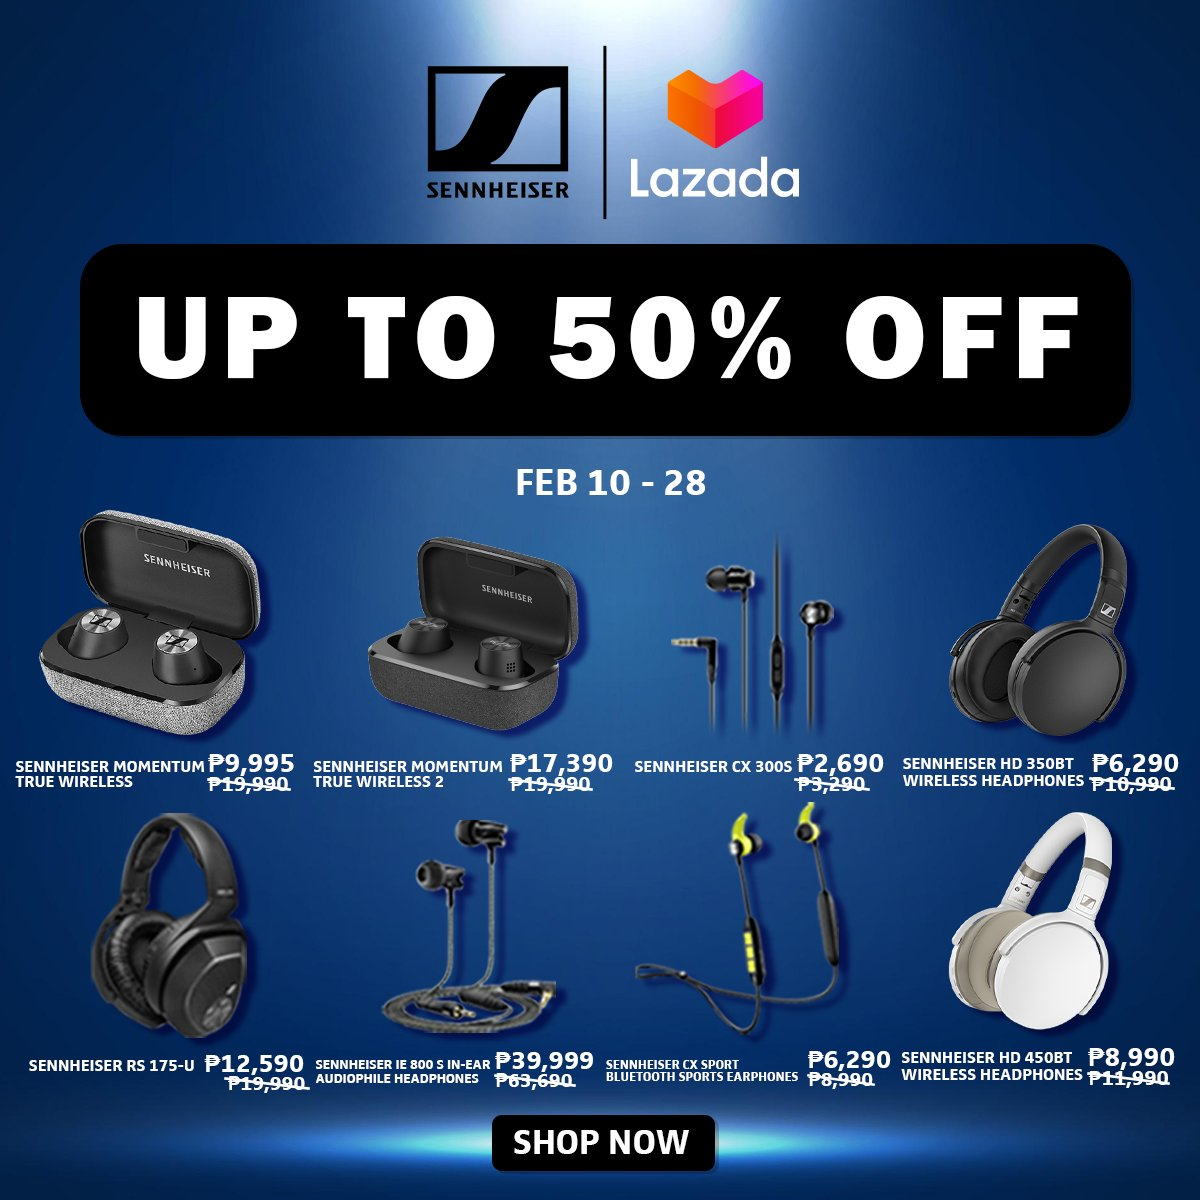 ‼️Sennheiser 3.3 Sale Up To 50% OFF‼️ 🛒SHOP NOW!➡  🛒SHOP NOW!➡   🚚Cash on Delivery  **Price is subject to change without prior notice  #LazadaFinds #LazadaPH #LazadaxKathryn #LazadaxLMH  #payday #NasaLazadaYan #shoponline